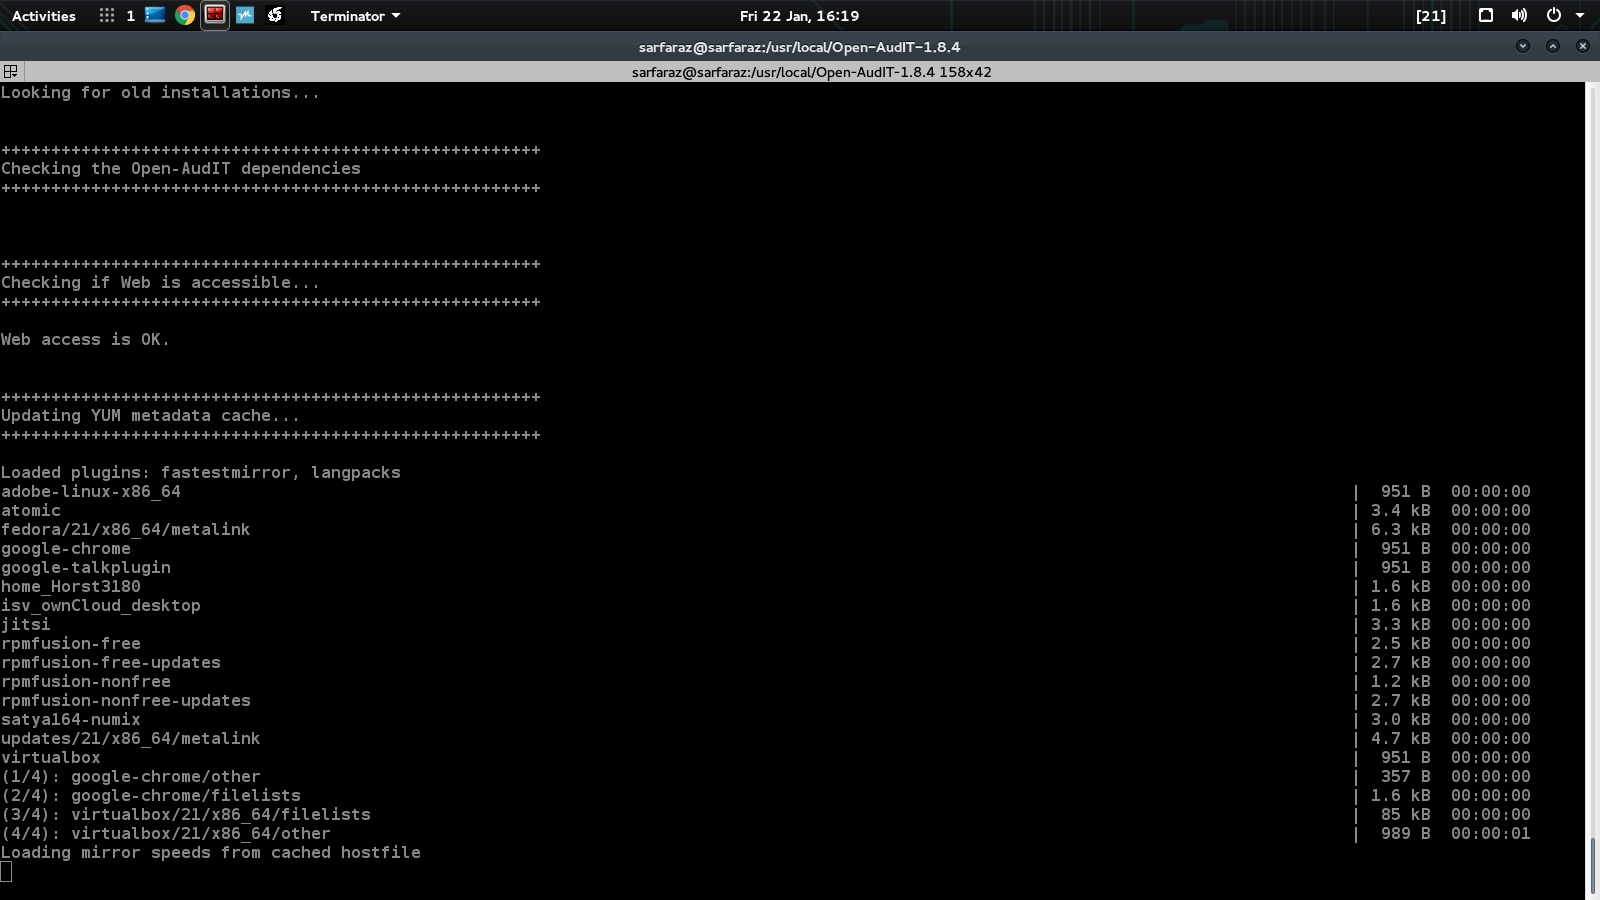 How-to-install-and-Configure-Open-AudIT-on-CentOS-6/7 - Techs2resolve